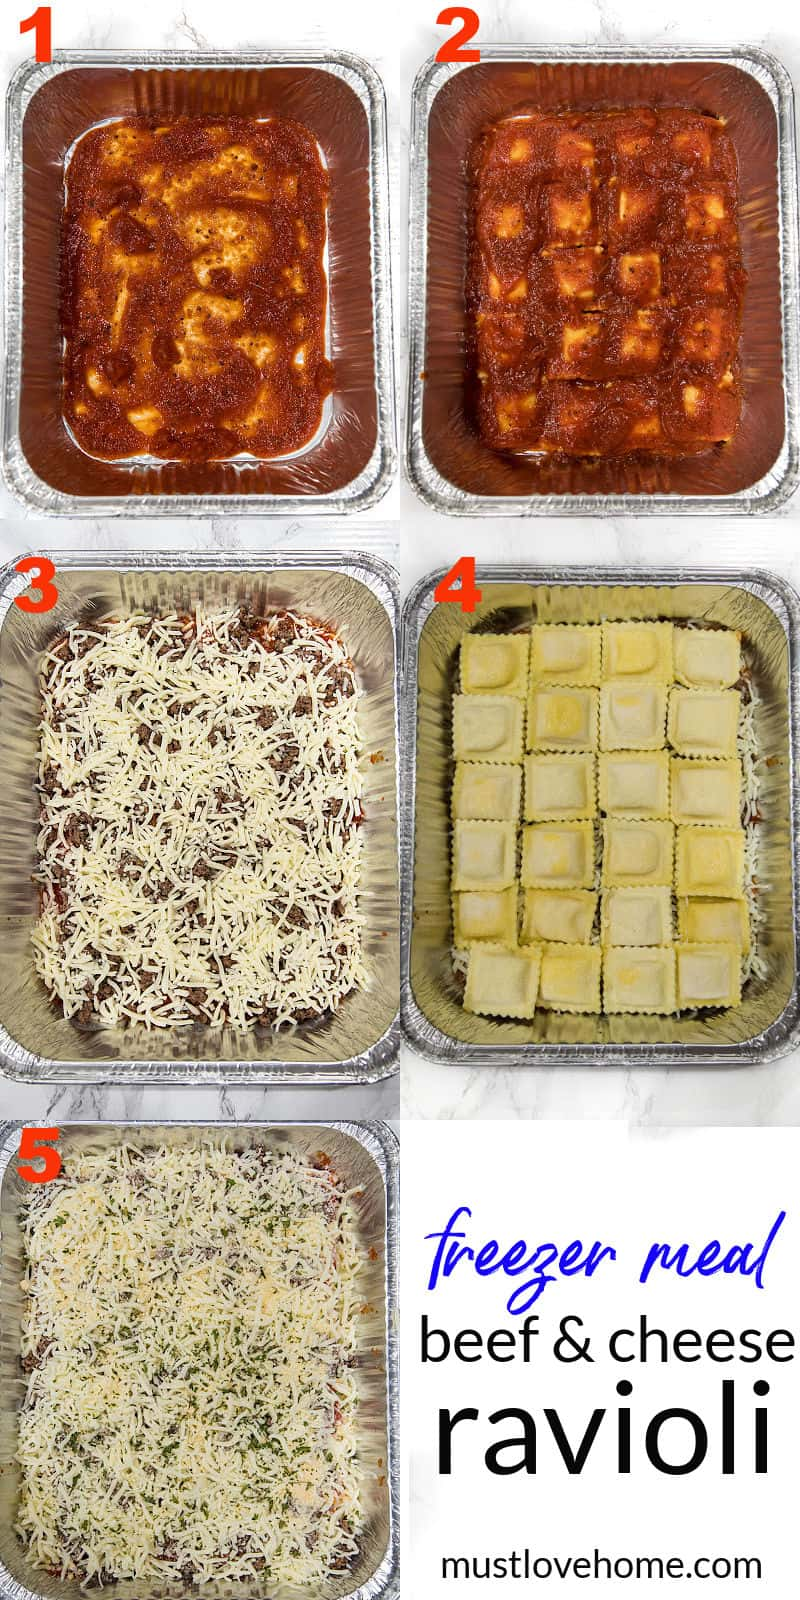 Dinner made easy with an easy freezer meal beef and cheese ravioli made with simple ingredients and a dash of spice. #mustlovehomecooking